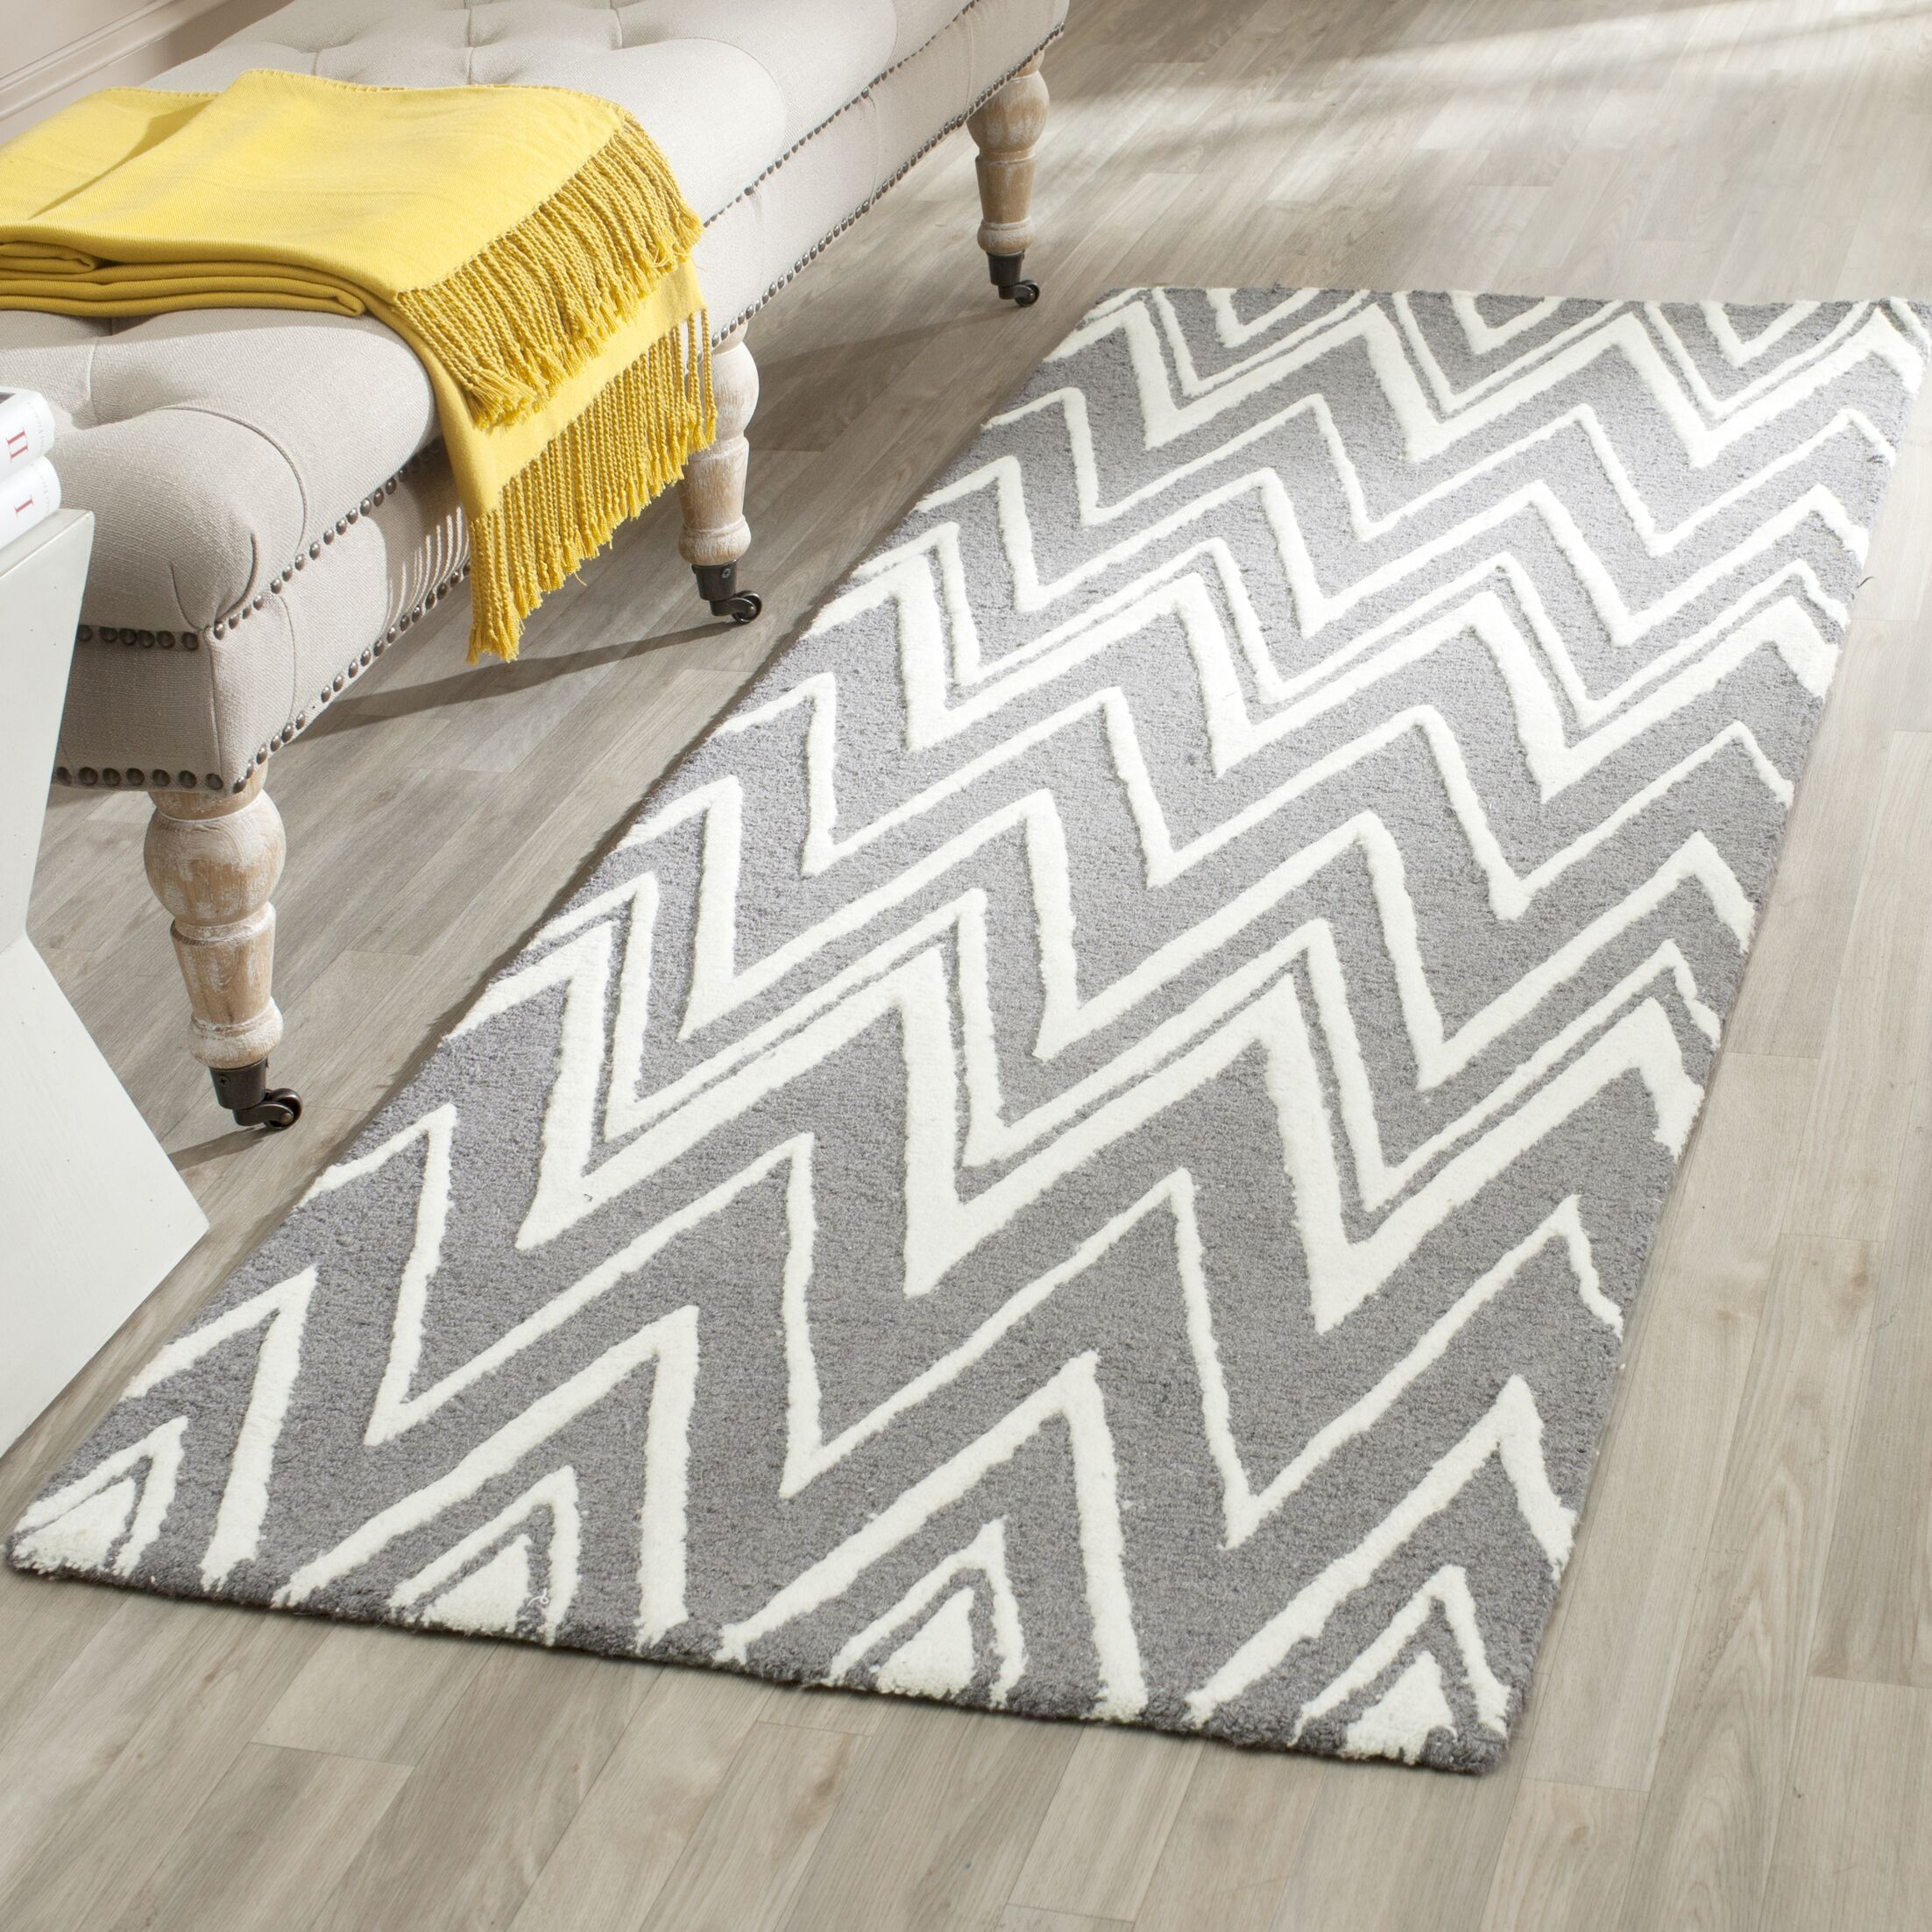 Martins Hand-Tufted Wool Gray Area Rug Rug Size: Rectangle 3' x 5'